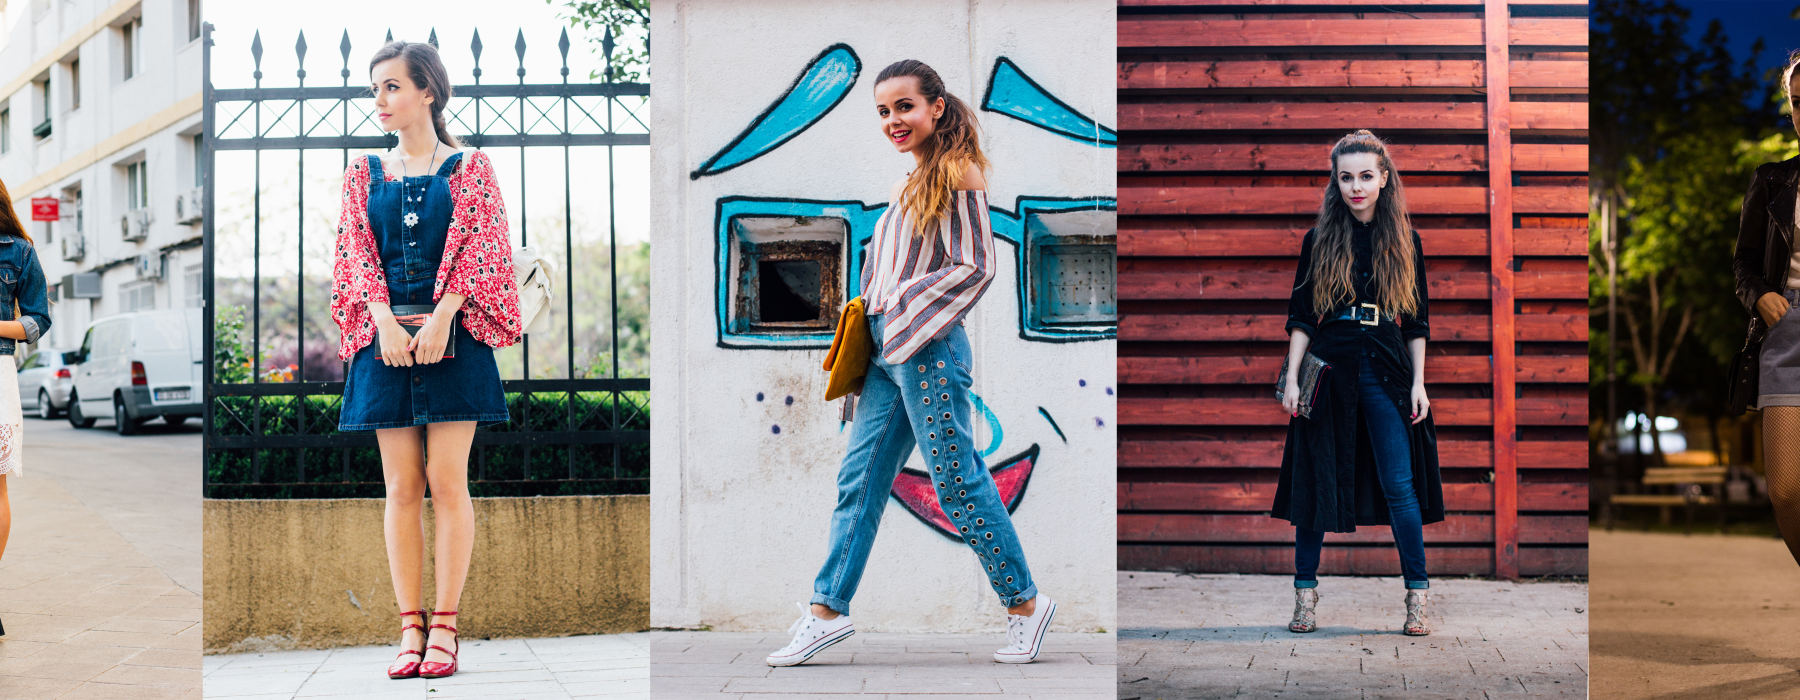 Challenge yourself to wear denim (in a cool way!)